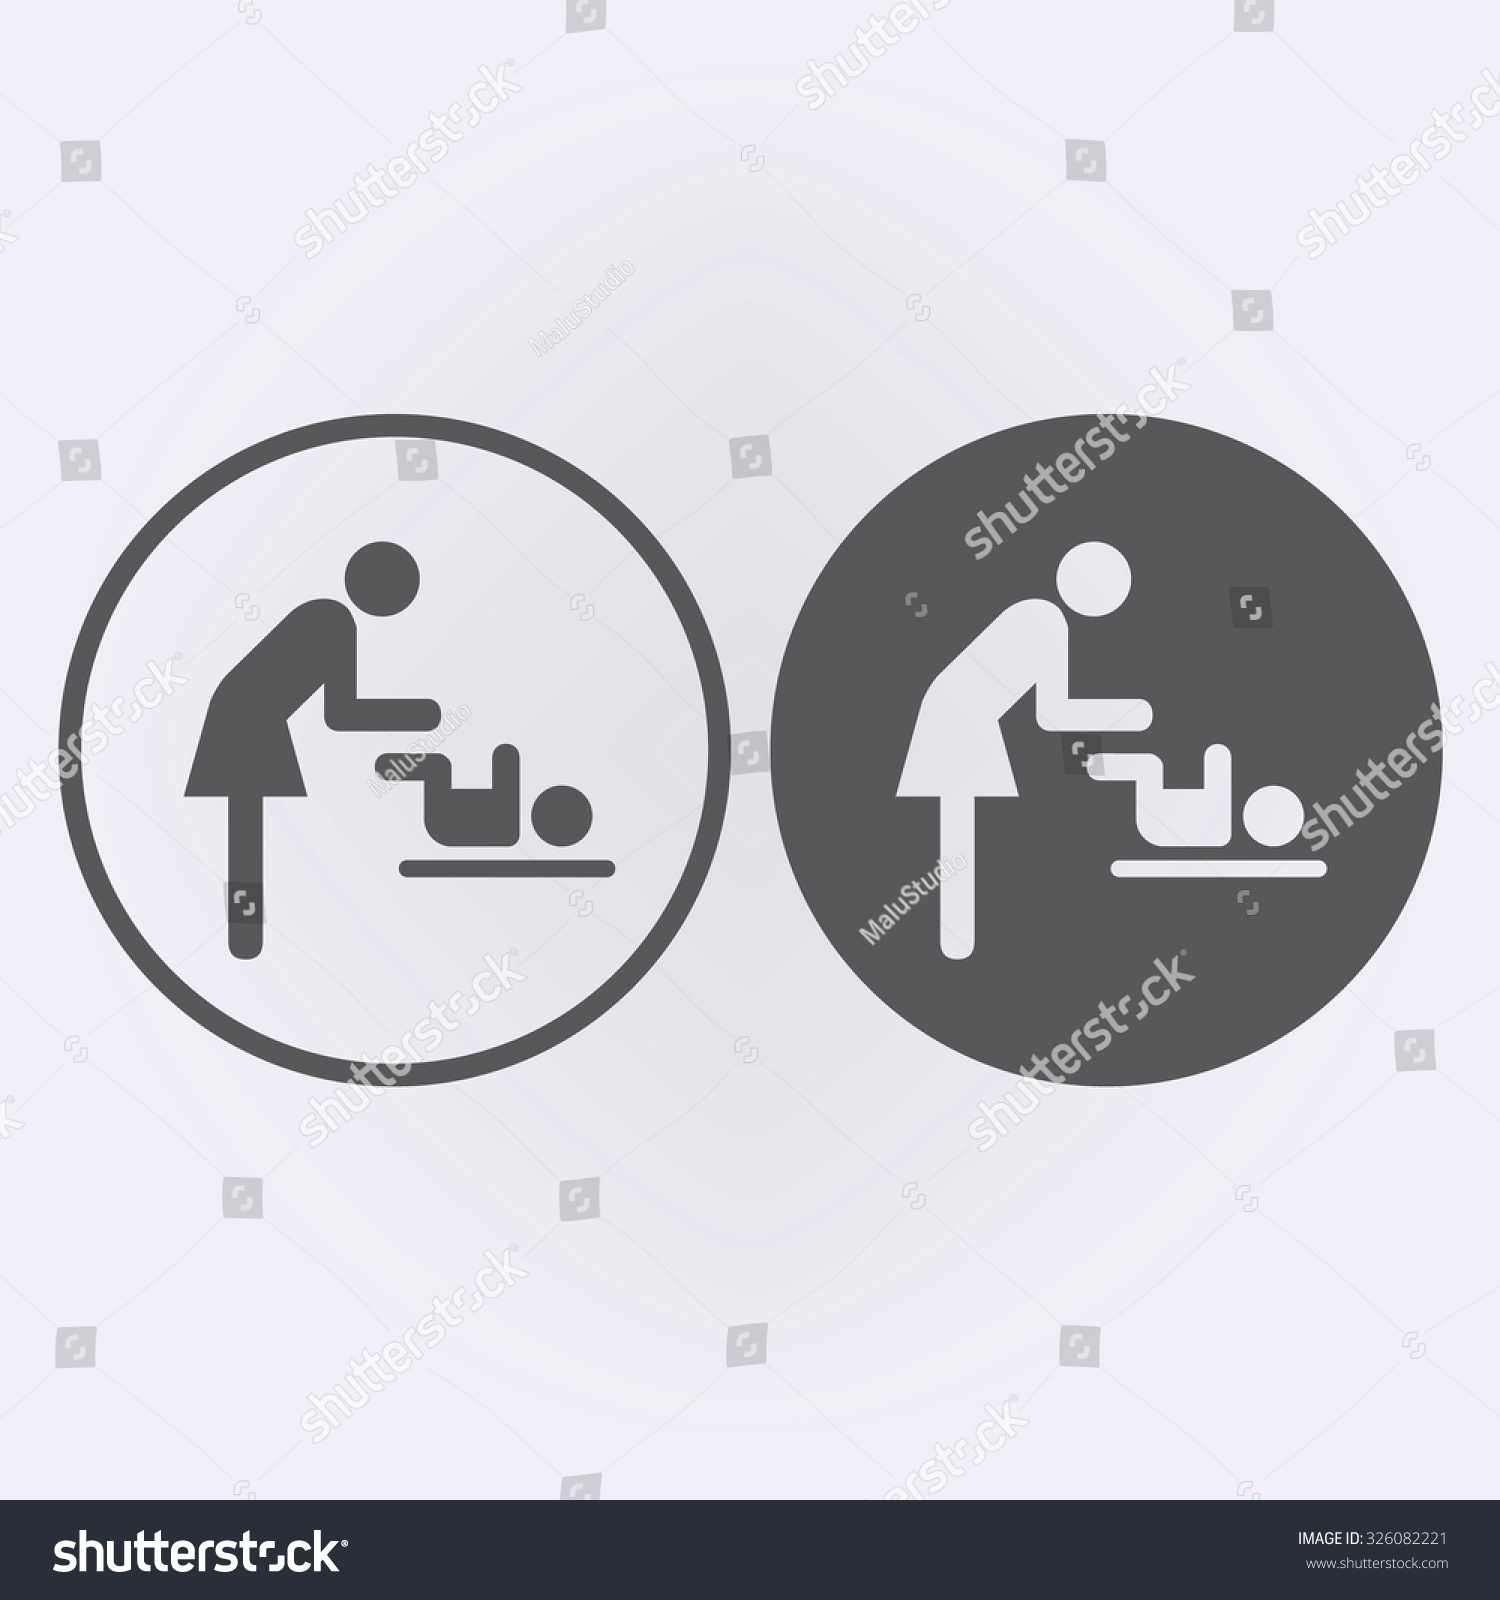 Symbol women baby toilet icon set stock vector 326082221 shutterstock symbol for women and baby toilet icon set in circle vector illustration biocorpaavc Gallery